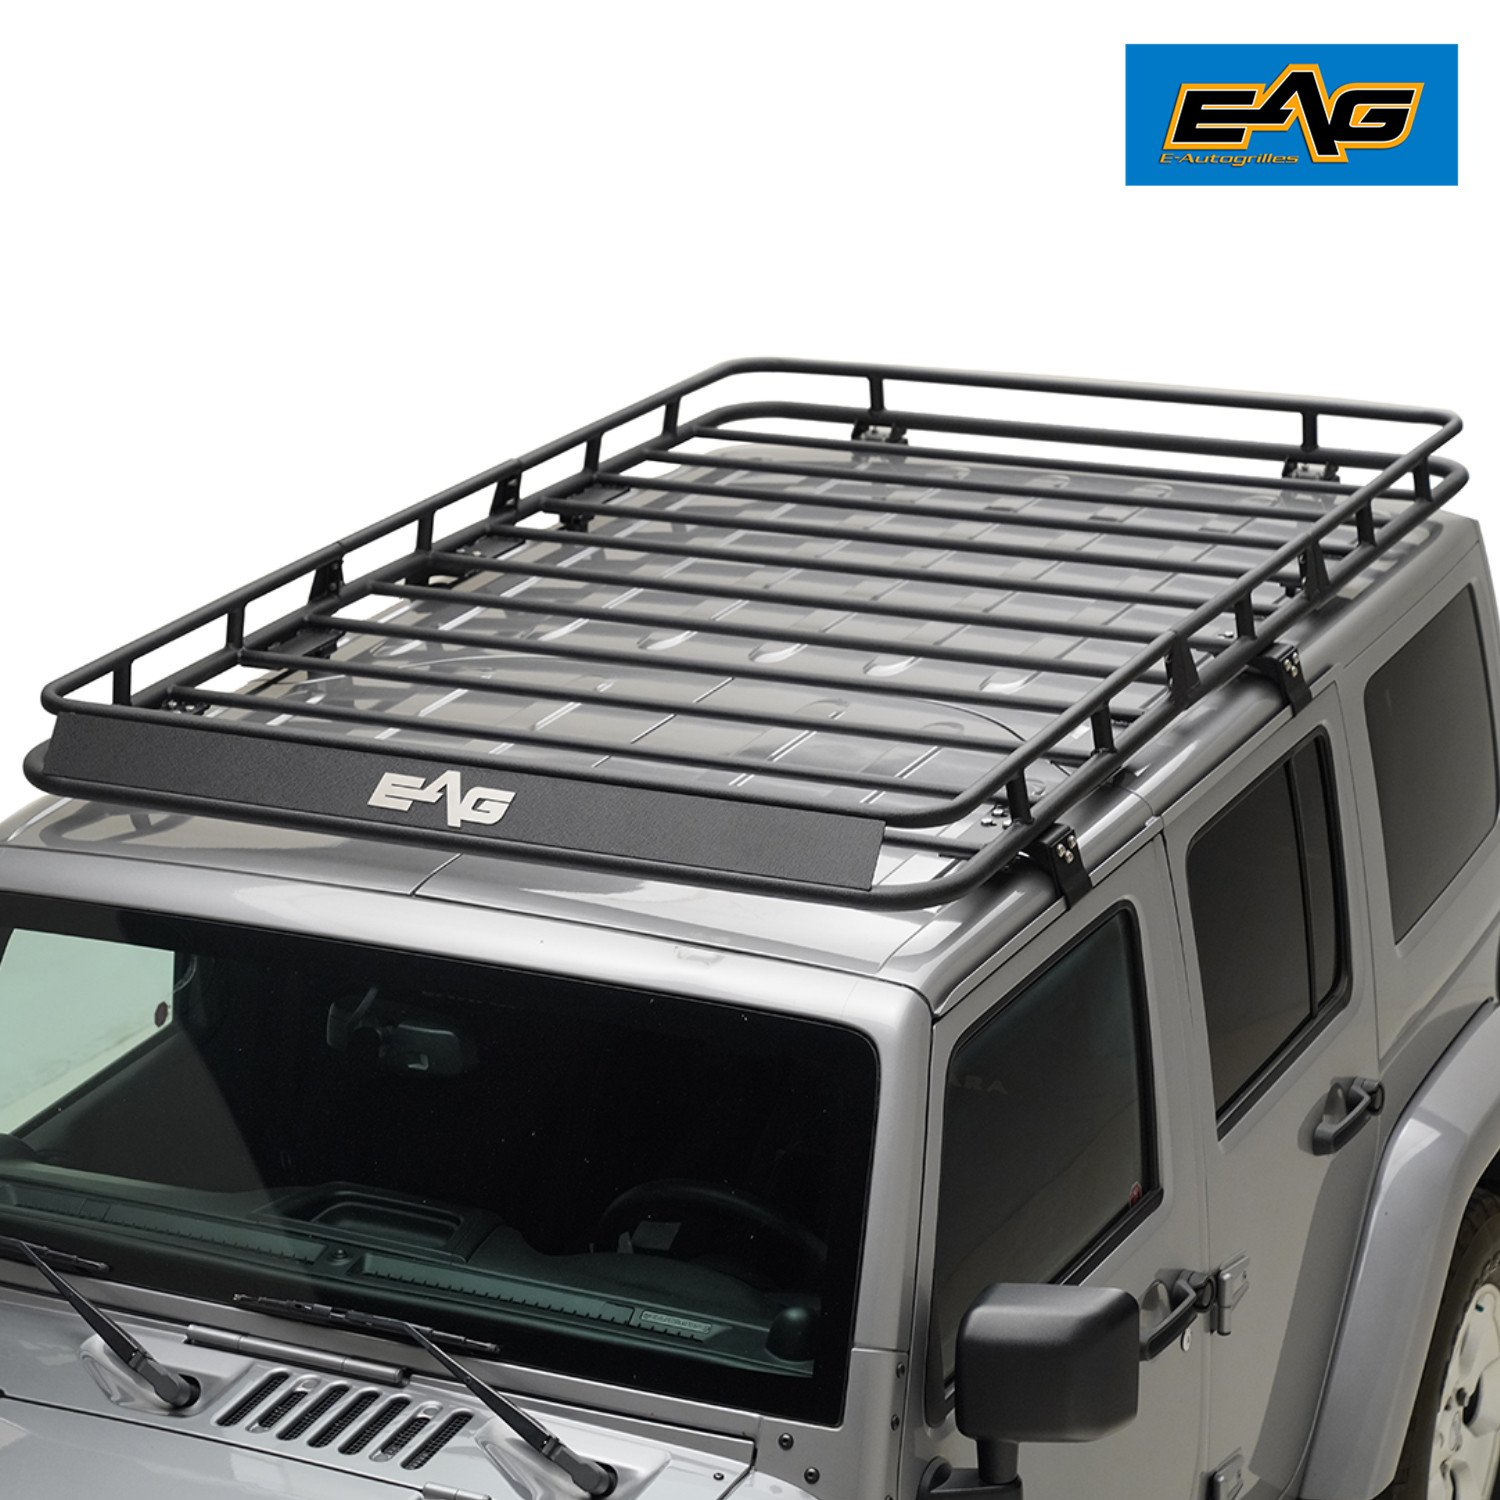 EAG Full Length Roof Rack Cargo Basket for 07-17 Jeep Wrangler JK 4 Door (4.6' x 7.8' x 5.5'') by E-Autogrilles